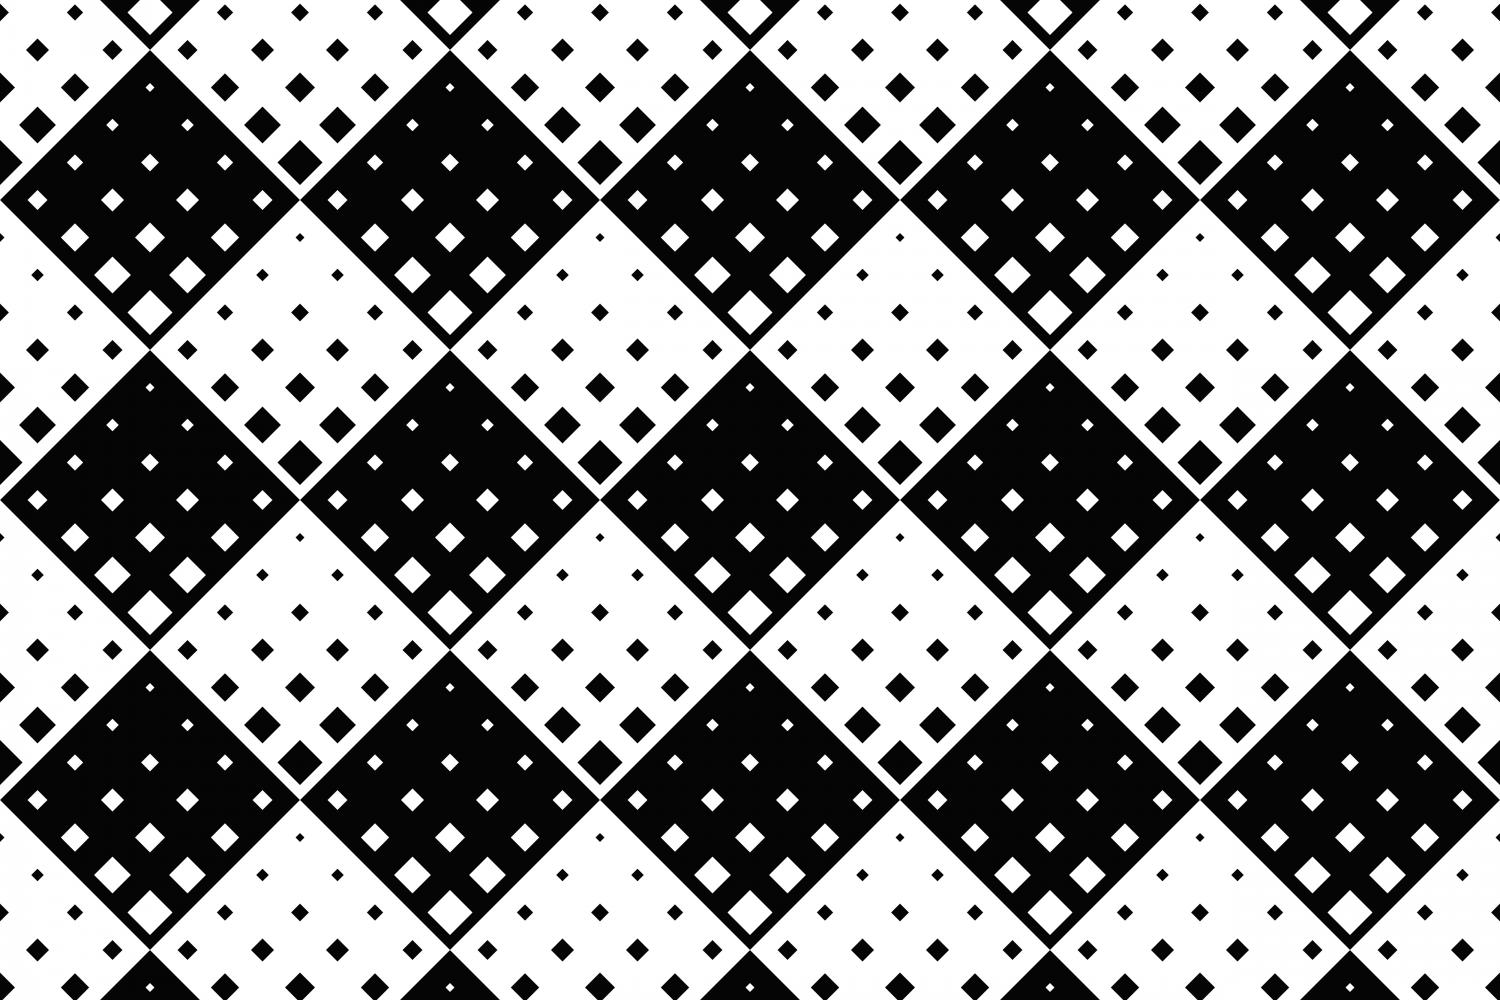 24 Seamless Square Patterns example image 20